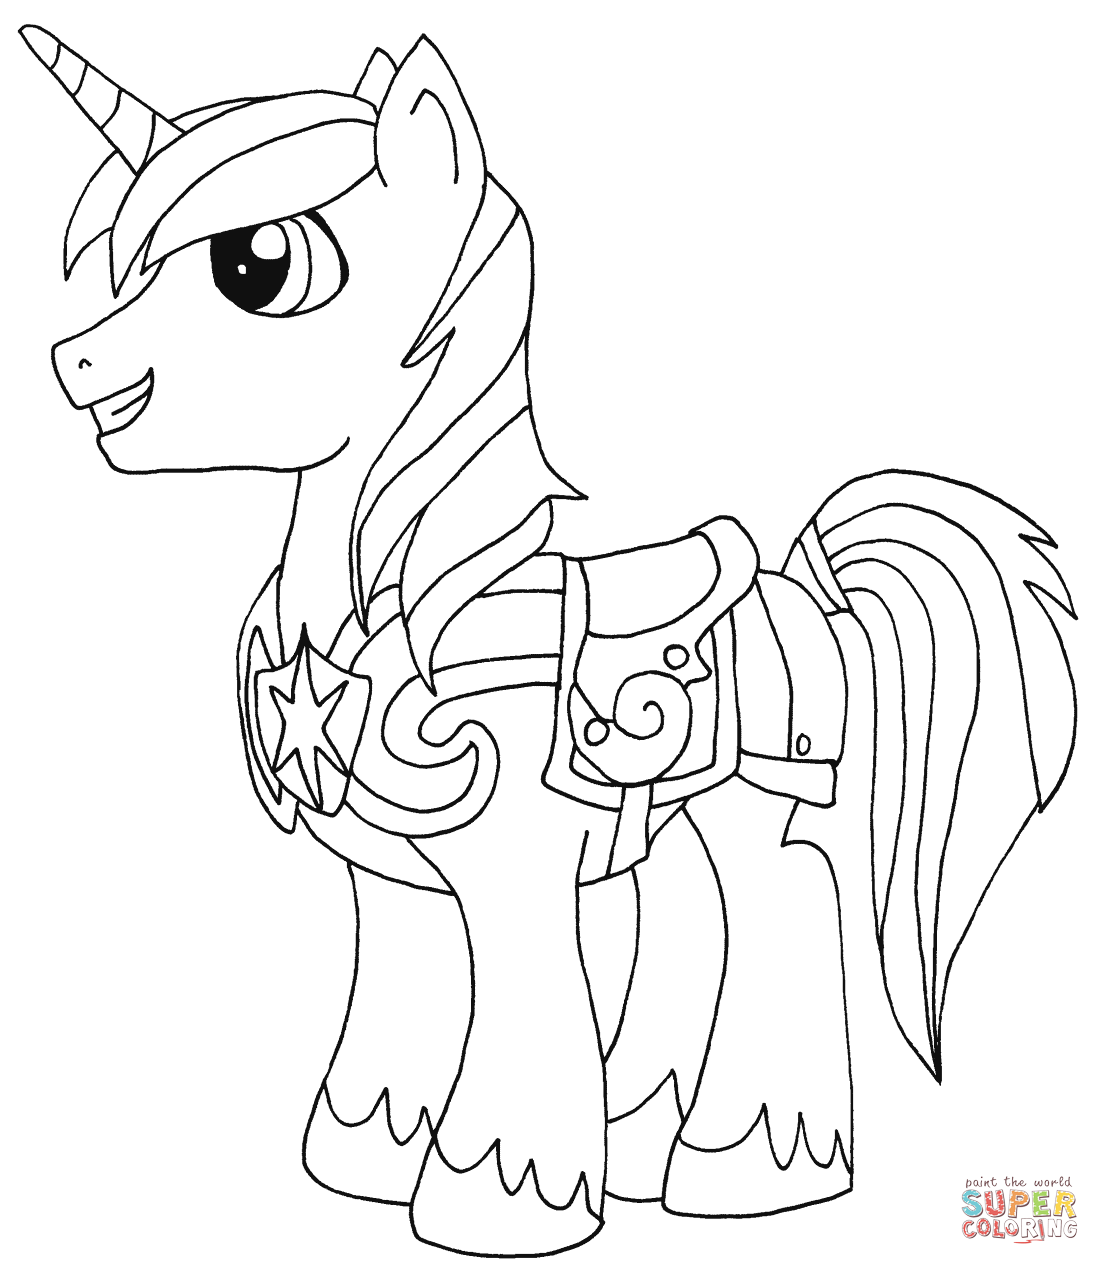 Ausmalbilder My Little Pony Der Film : My Little Pony Drawing Template At Getdrawings Com Free For